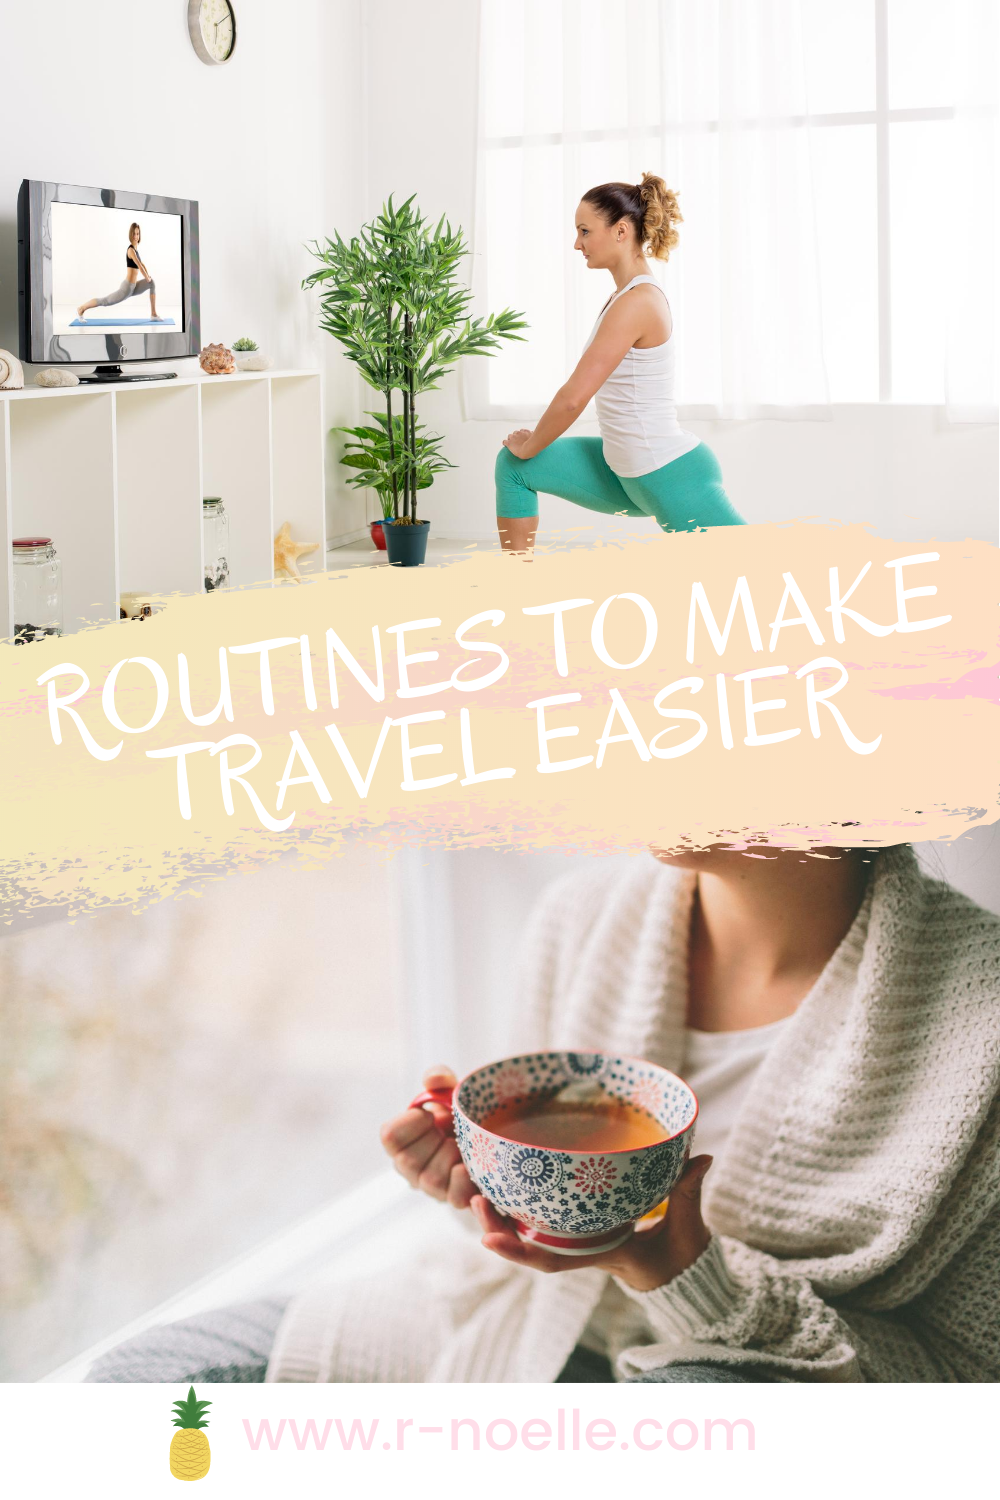 Many people struggle to find restful sleep when traveling. If you want to ease the restful nights in a new place. If you get a routine down in your daily life, it helps whether you're travel frequently or once in a blue moon.